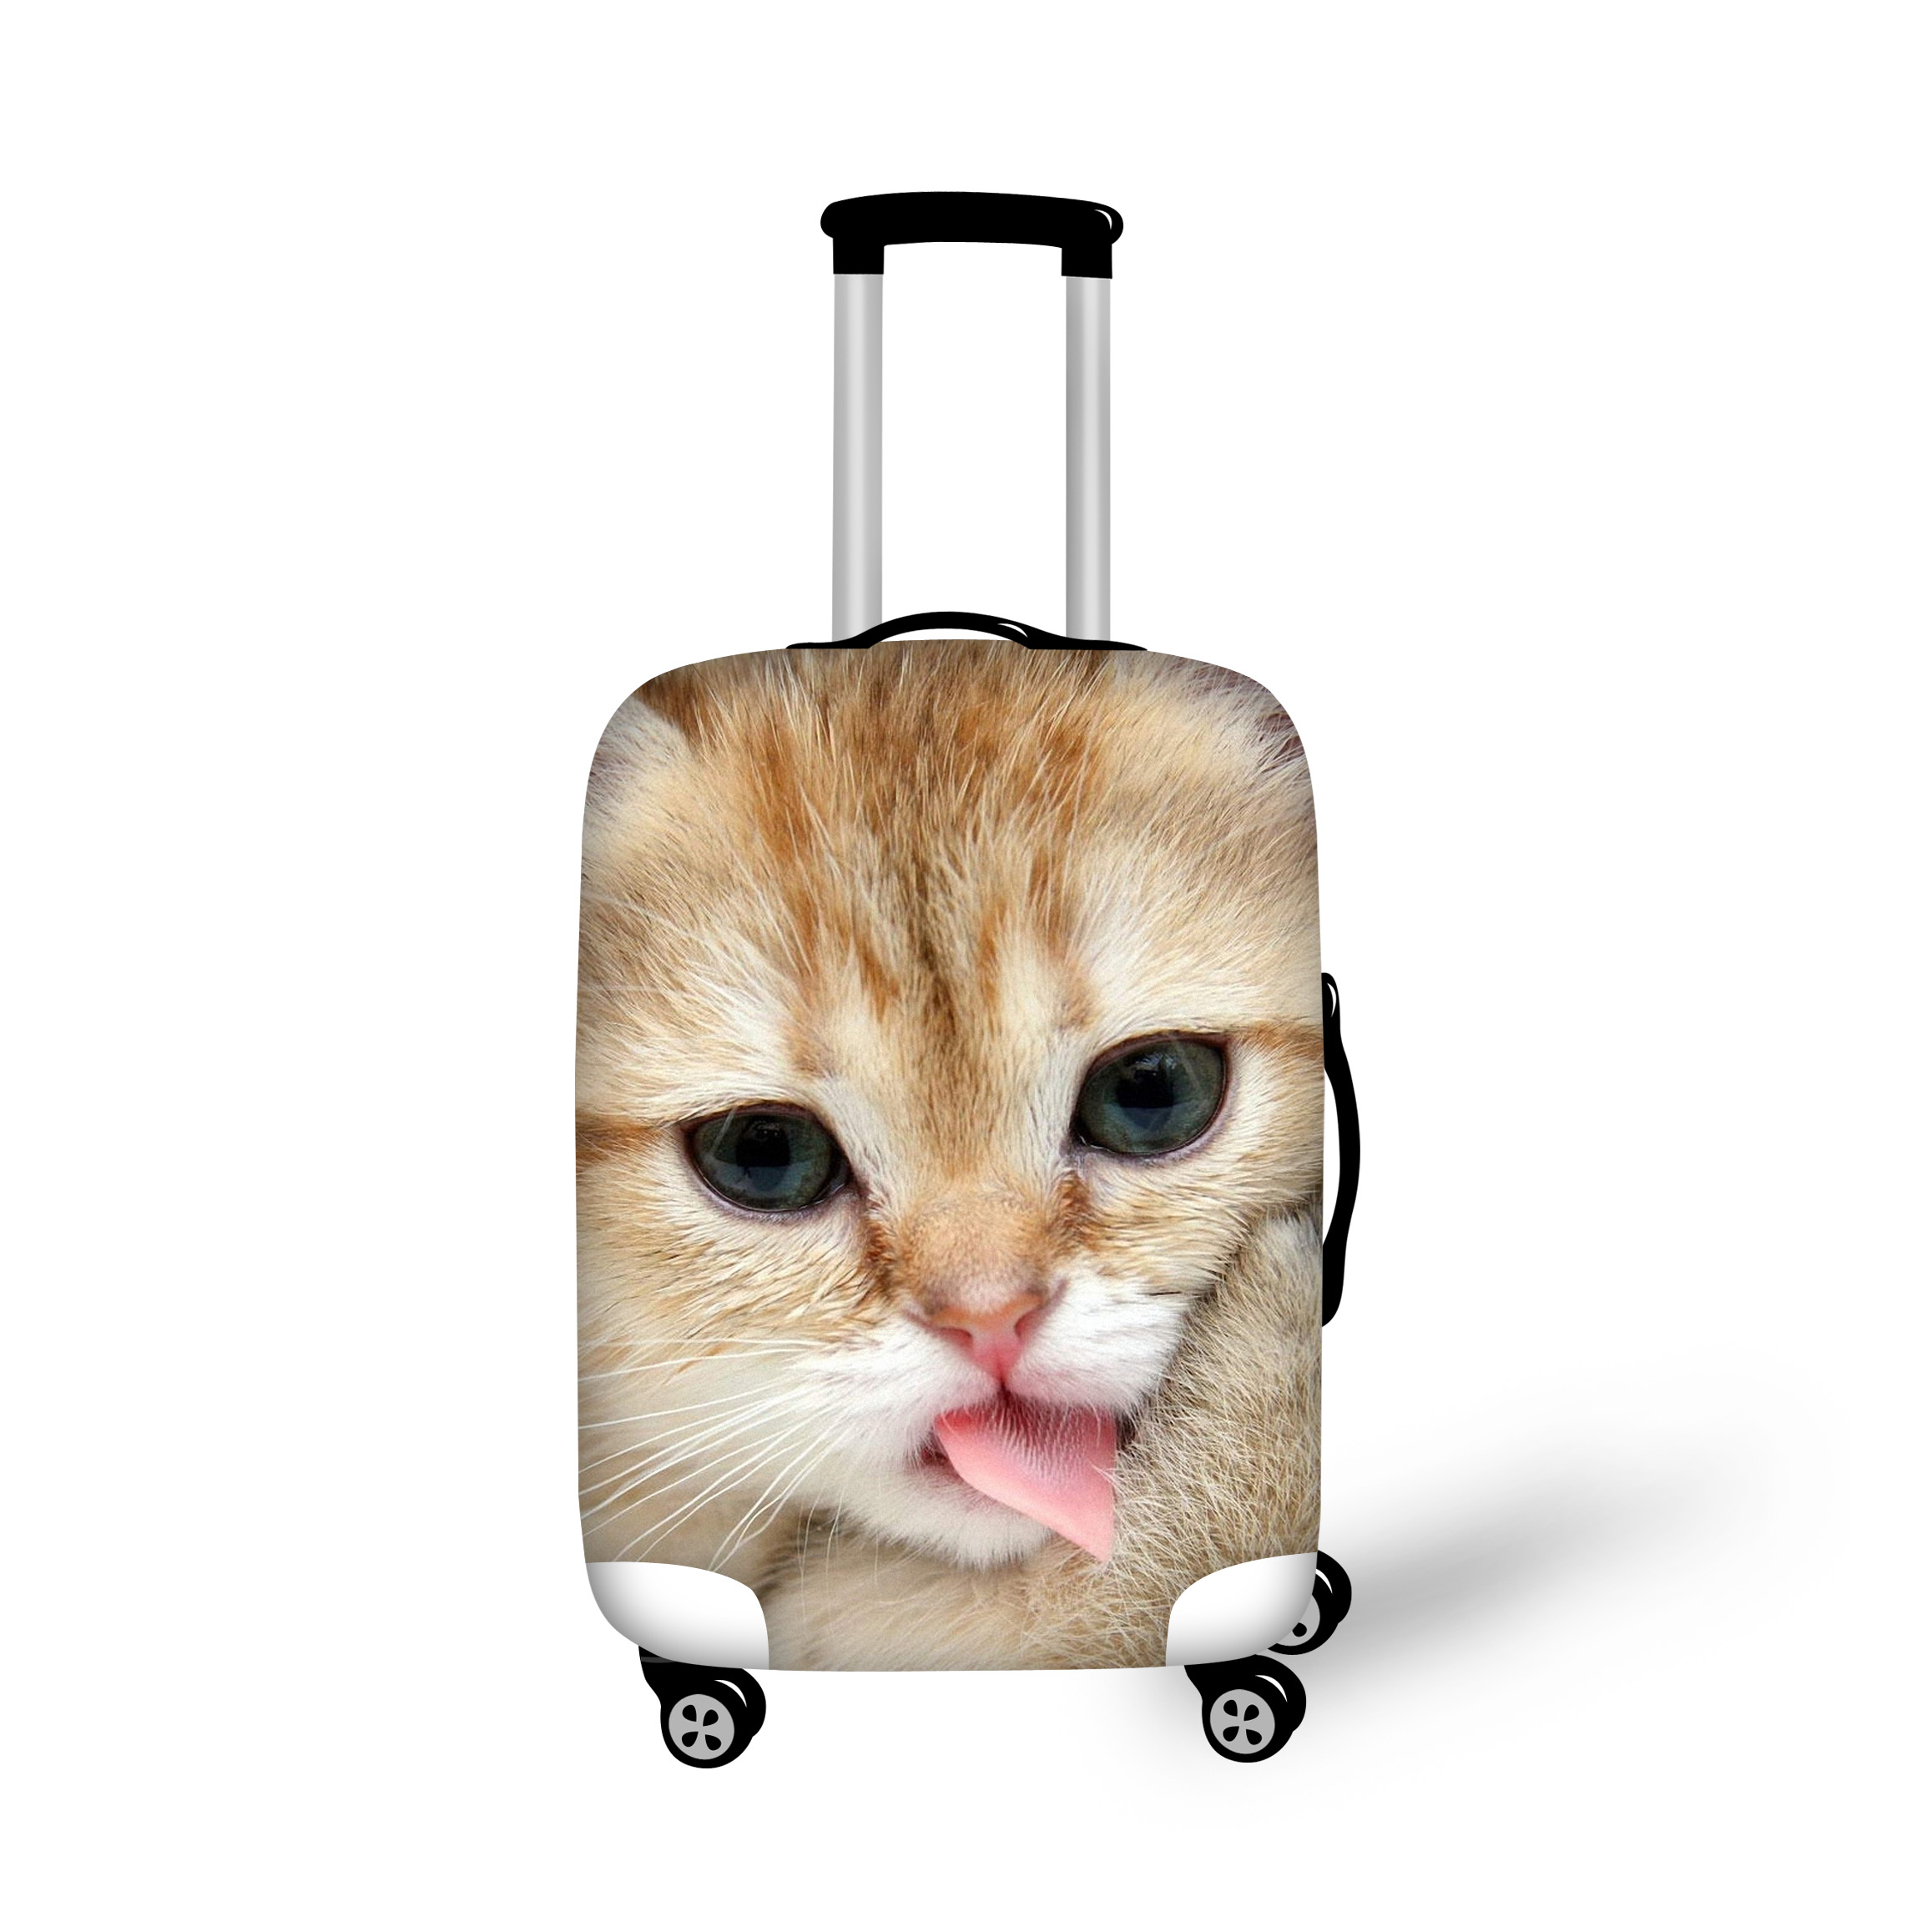 Sweet Cat Luggage Protective Cover Men's Women's Elastic Suitcase Travel Case Dust Rain Bags Accessories Dropshipping